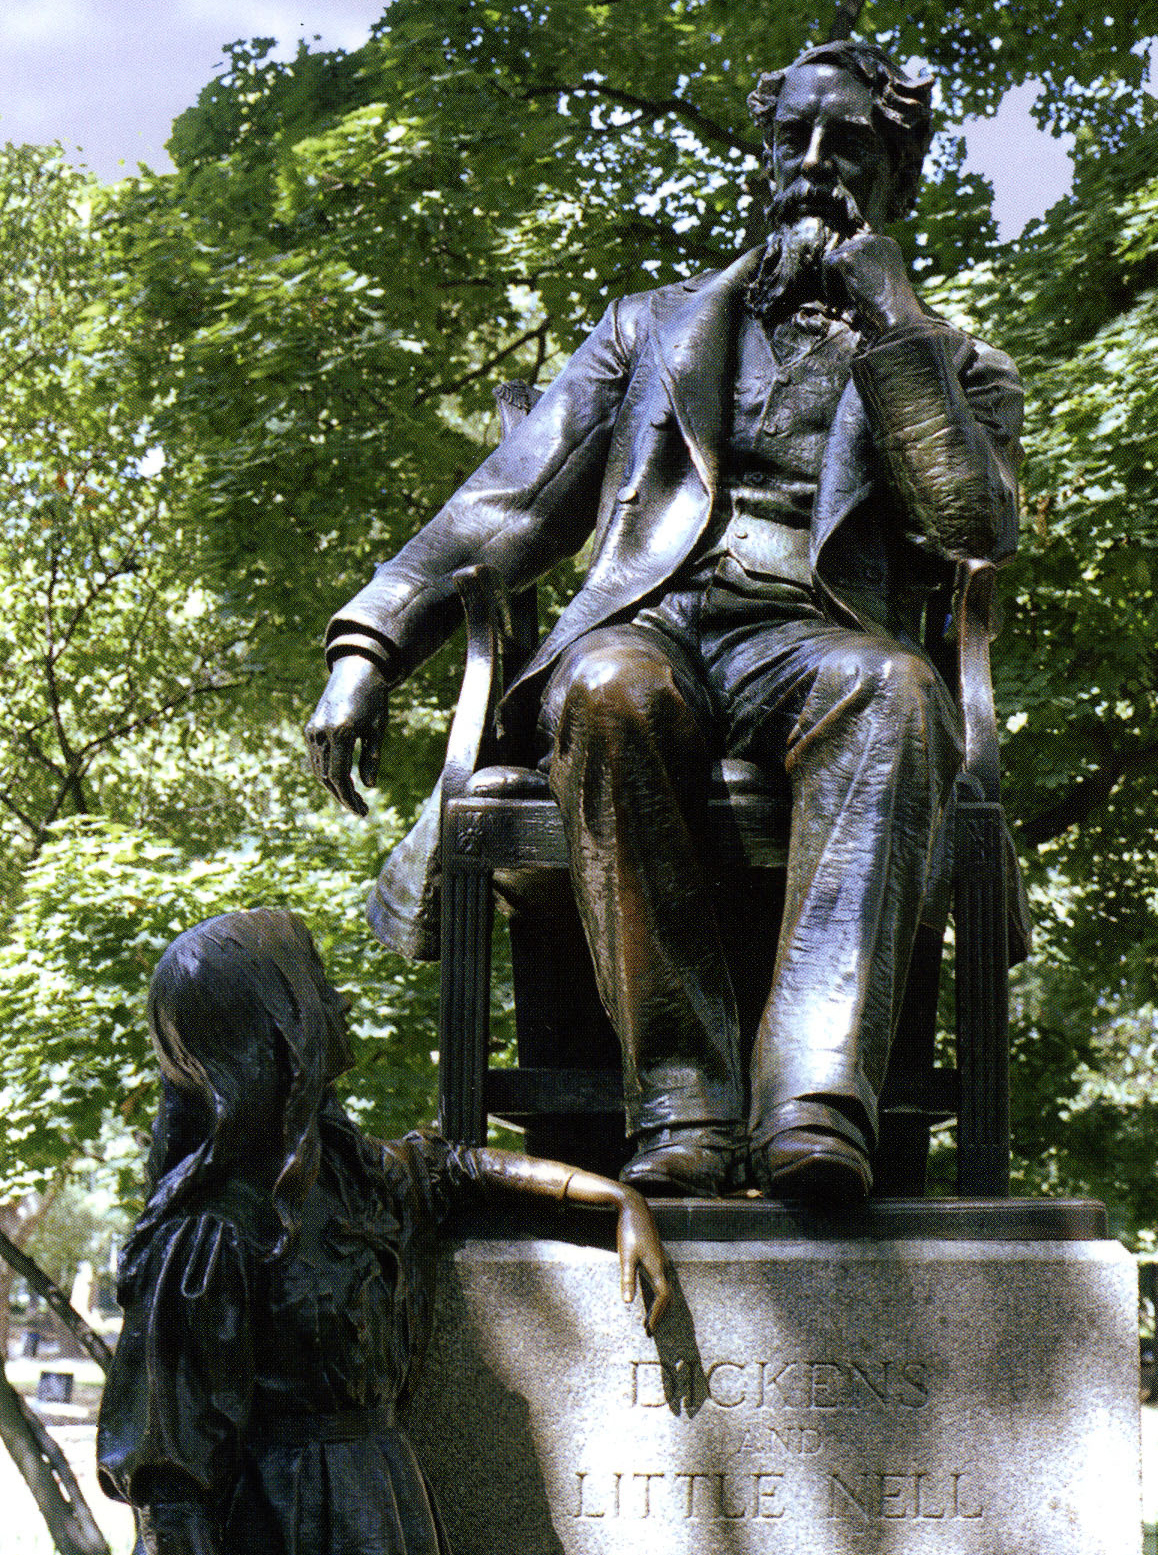 Dickens and Little Nell in Clark Park